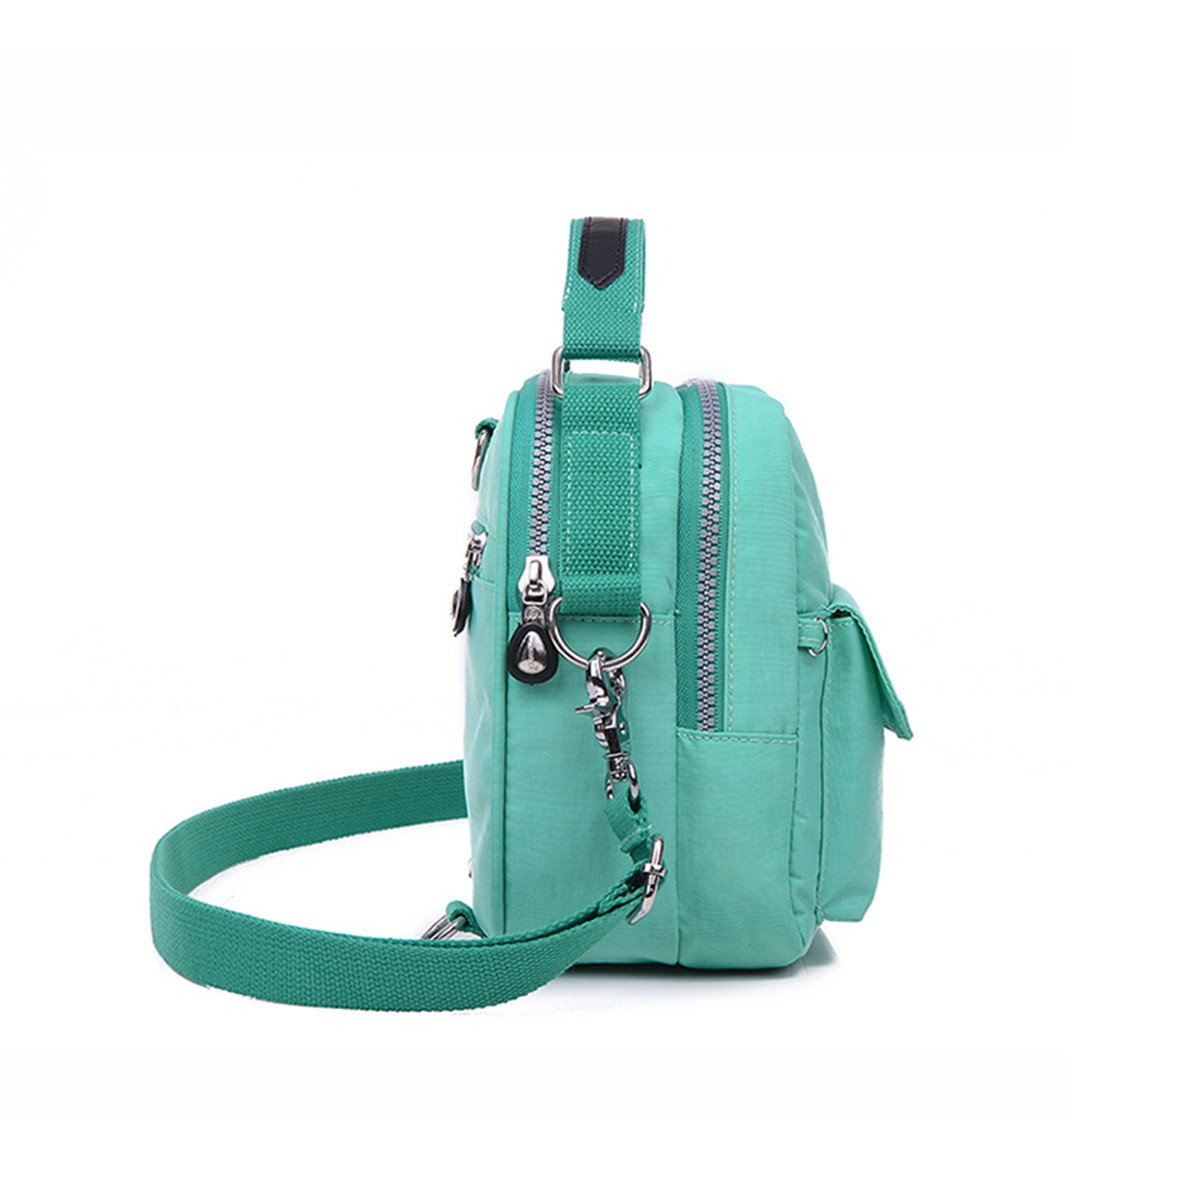 6fe5e091886a Tiny Chou Candy Color Mini Water Resistant Nylon Cell Phone Pouch Bag Dual  Layers Crossbody Handbag larger image